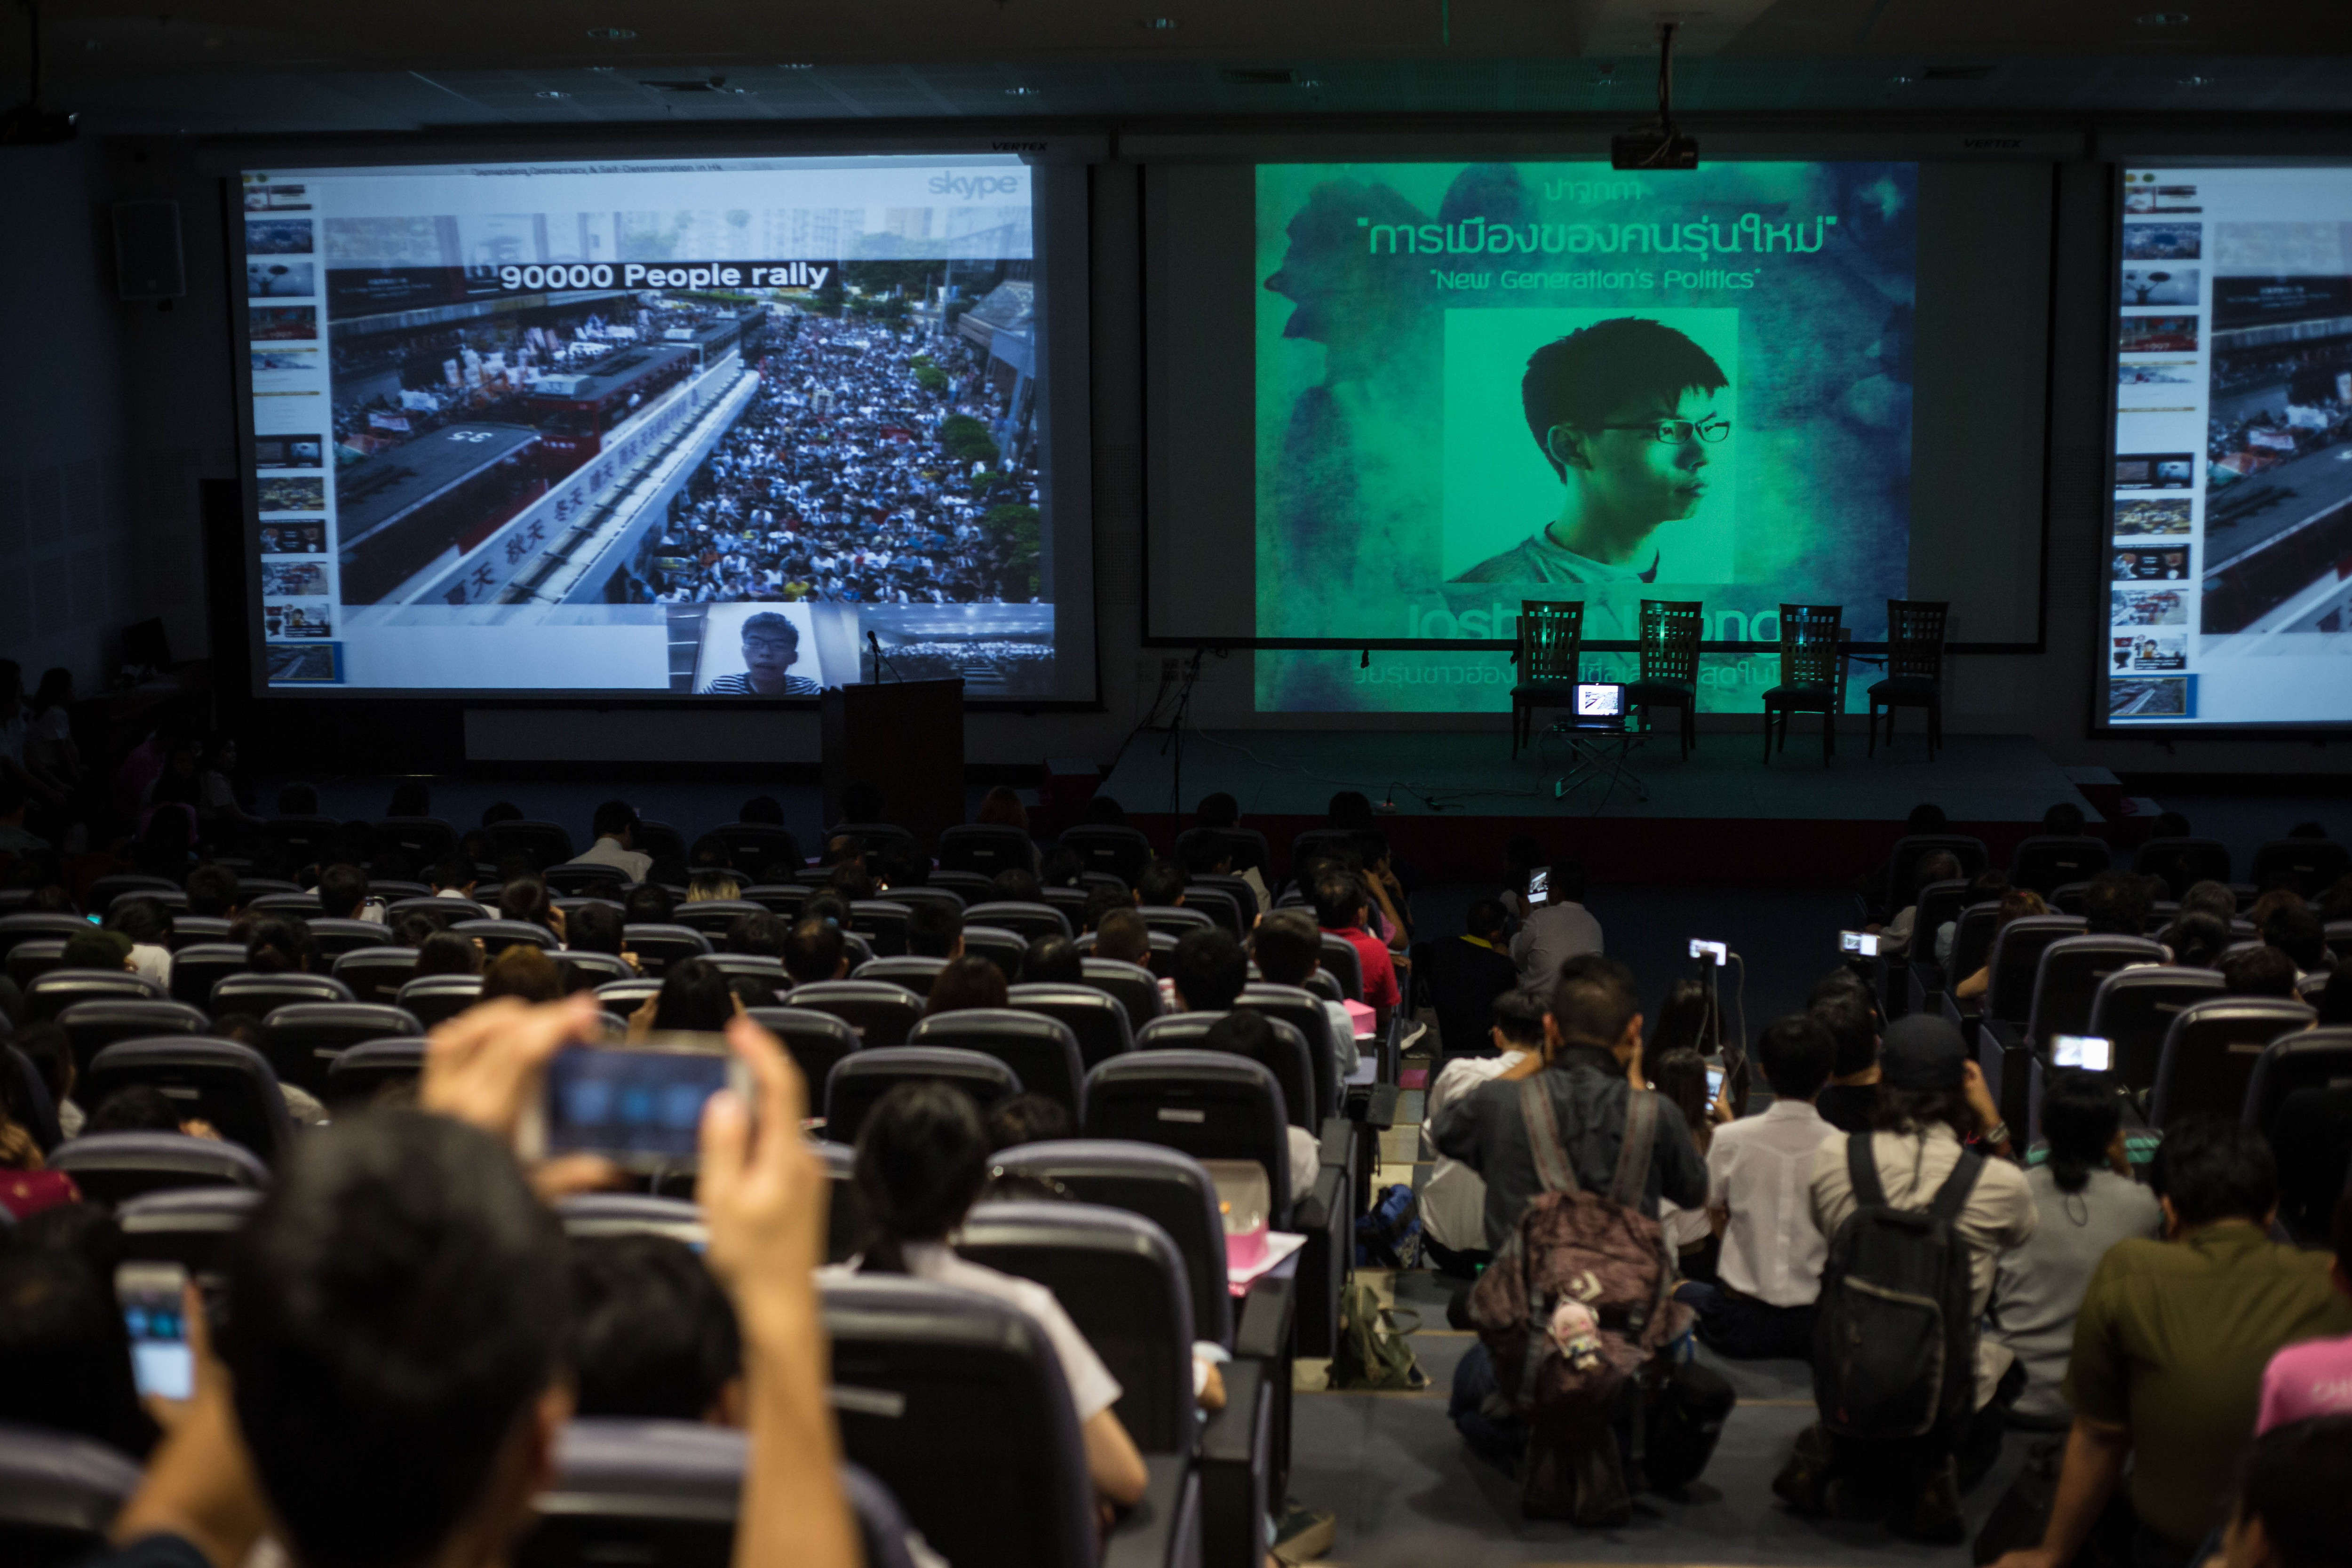 Joshua Wong gives a speech via Skype during an event at the Chulalongkorn University campus in Bangkok on Oct. 6, 2016. He was meant to give his speech in person but was arrested and sent back to Hong Kong one day before by Thai immigration